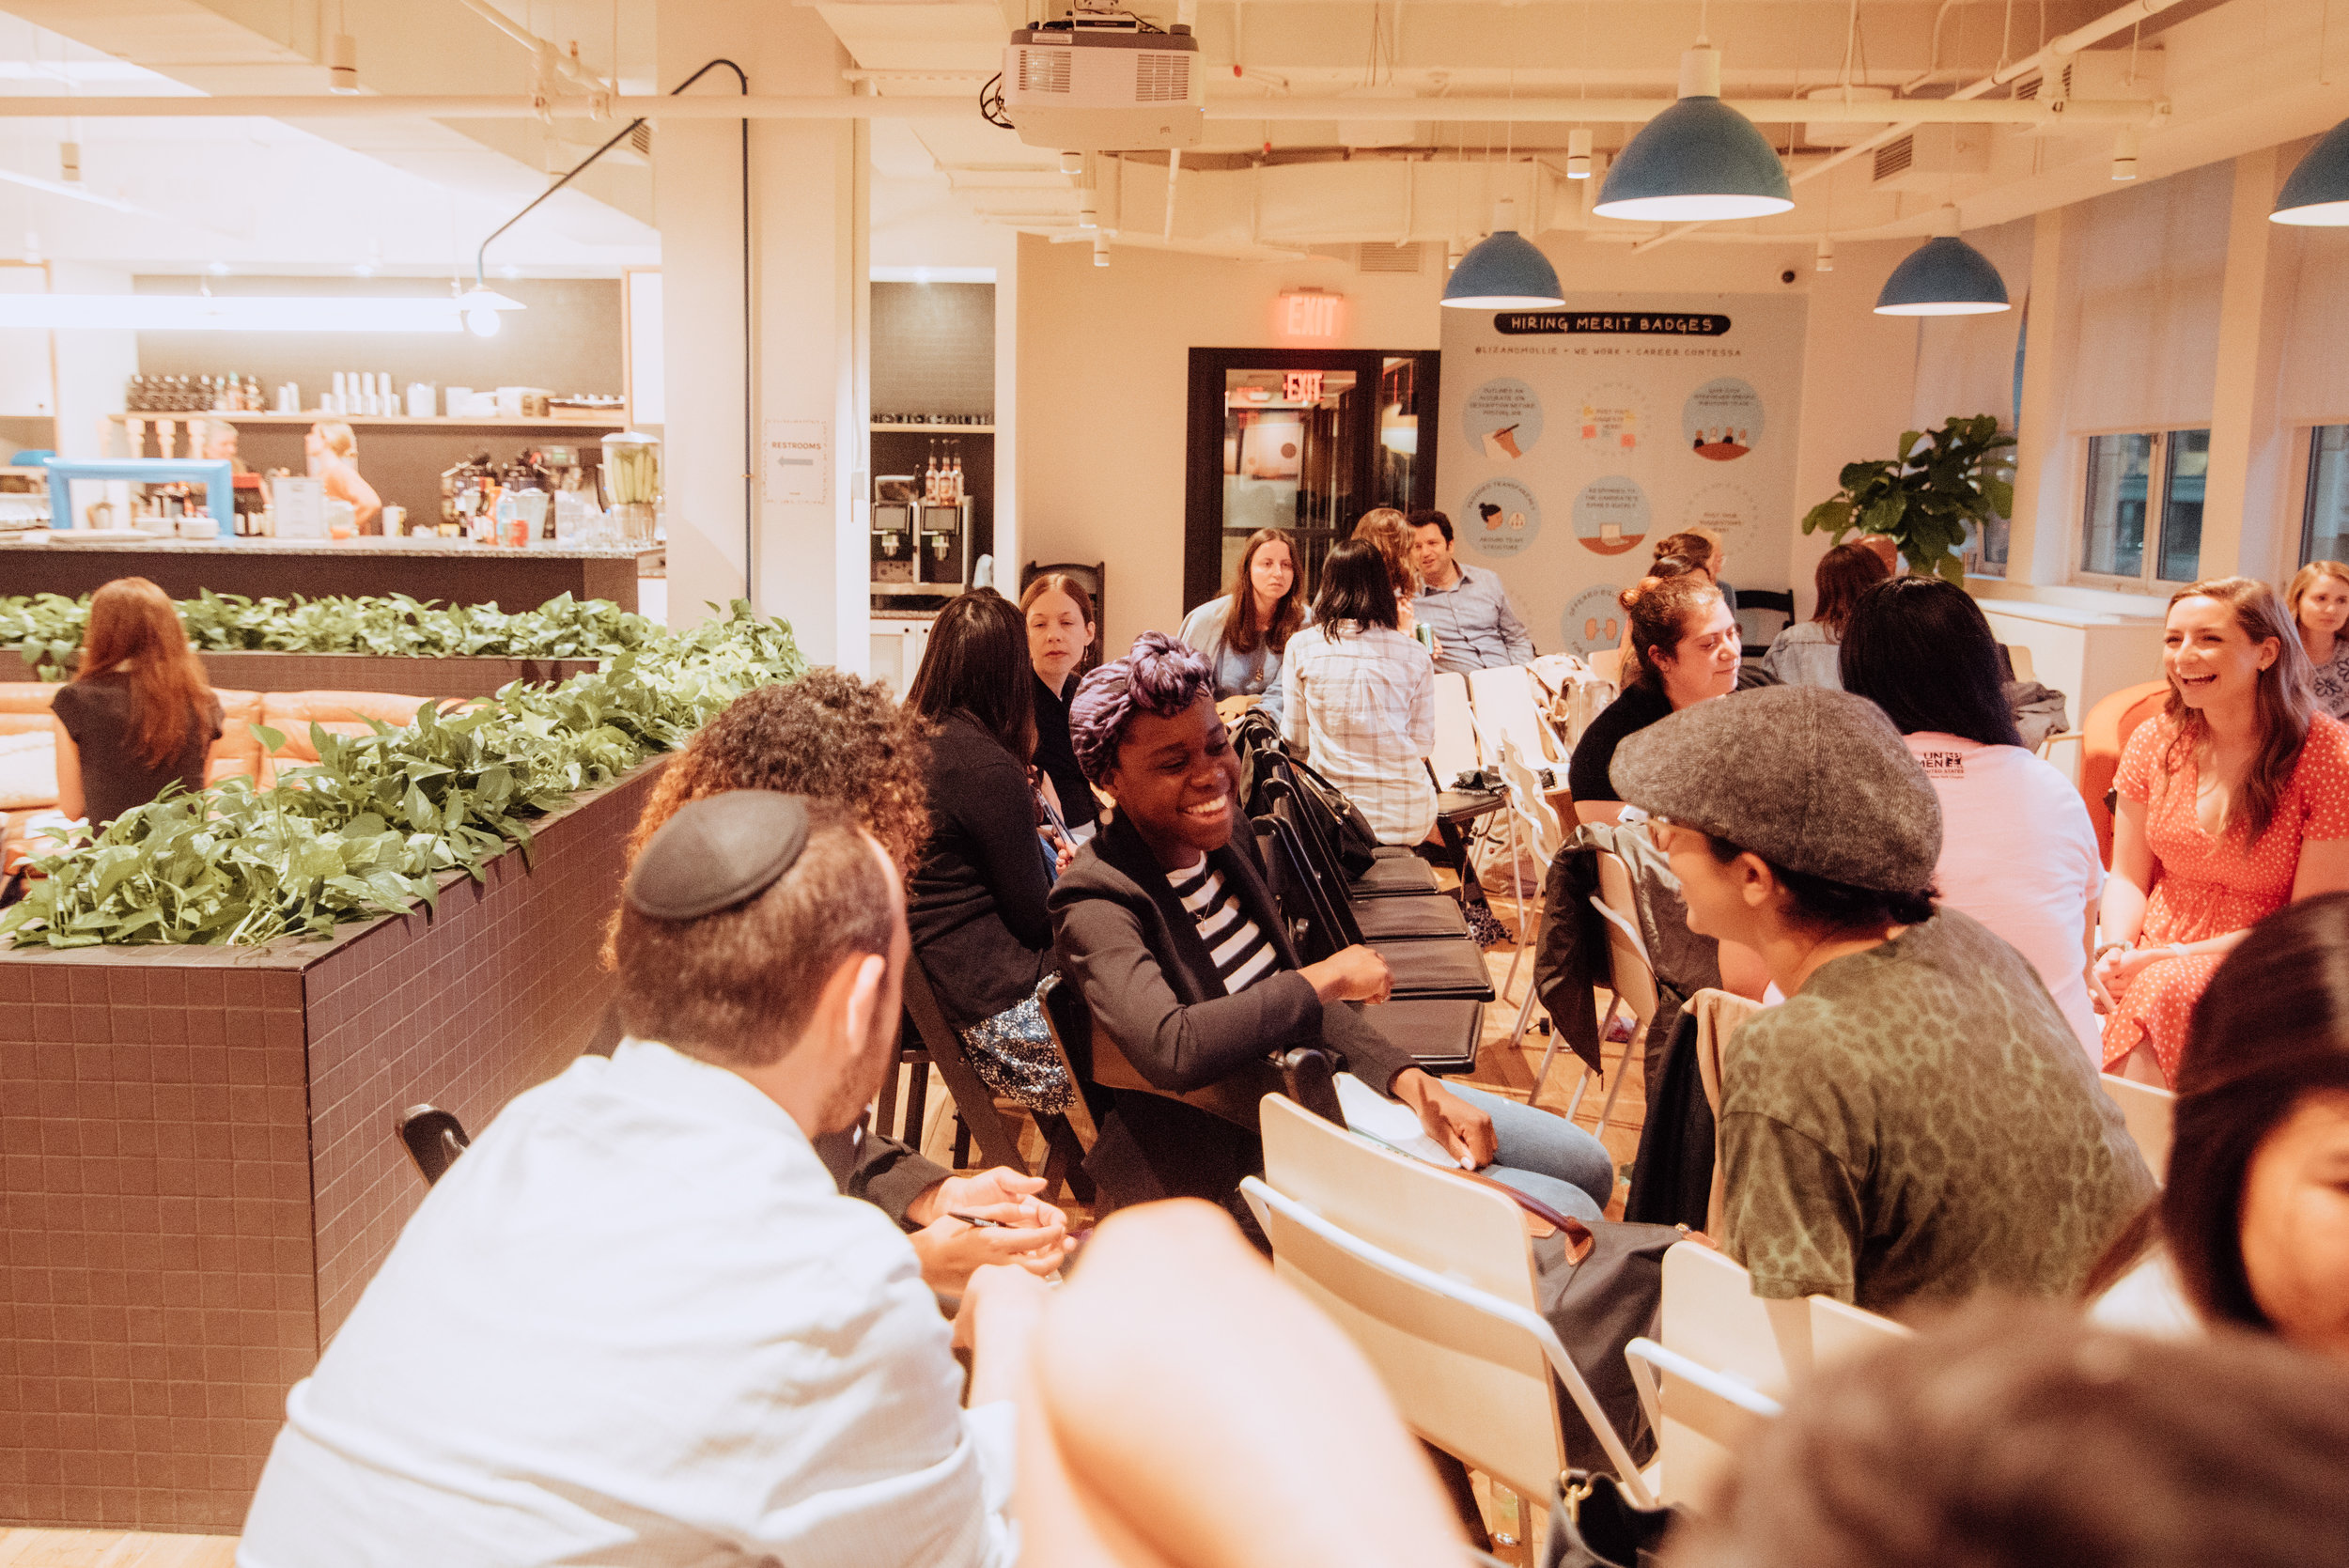 Participants at a WeWork workshop discuss their emotion tendencies, photos by Lori Gutman